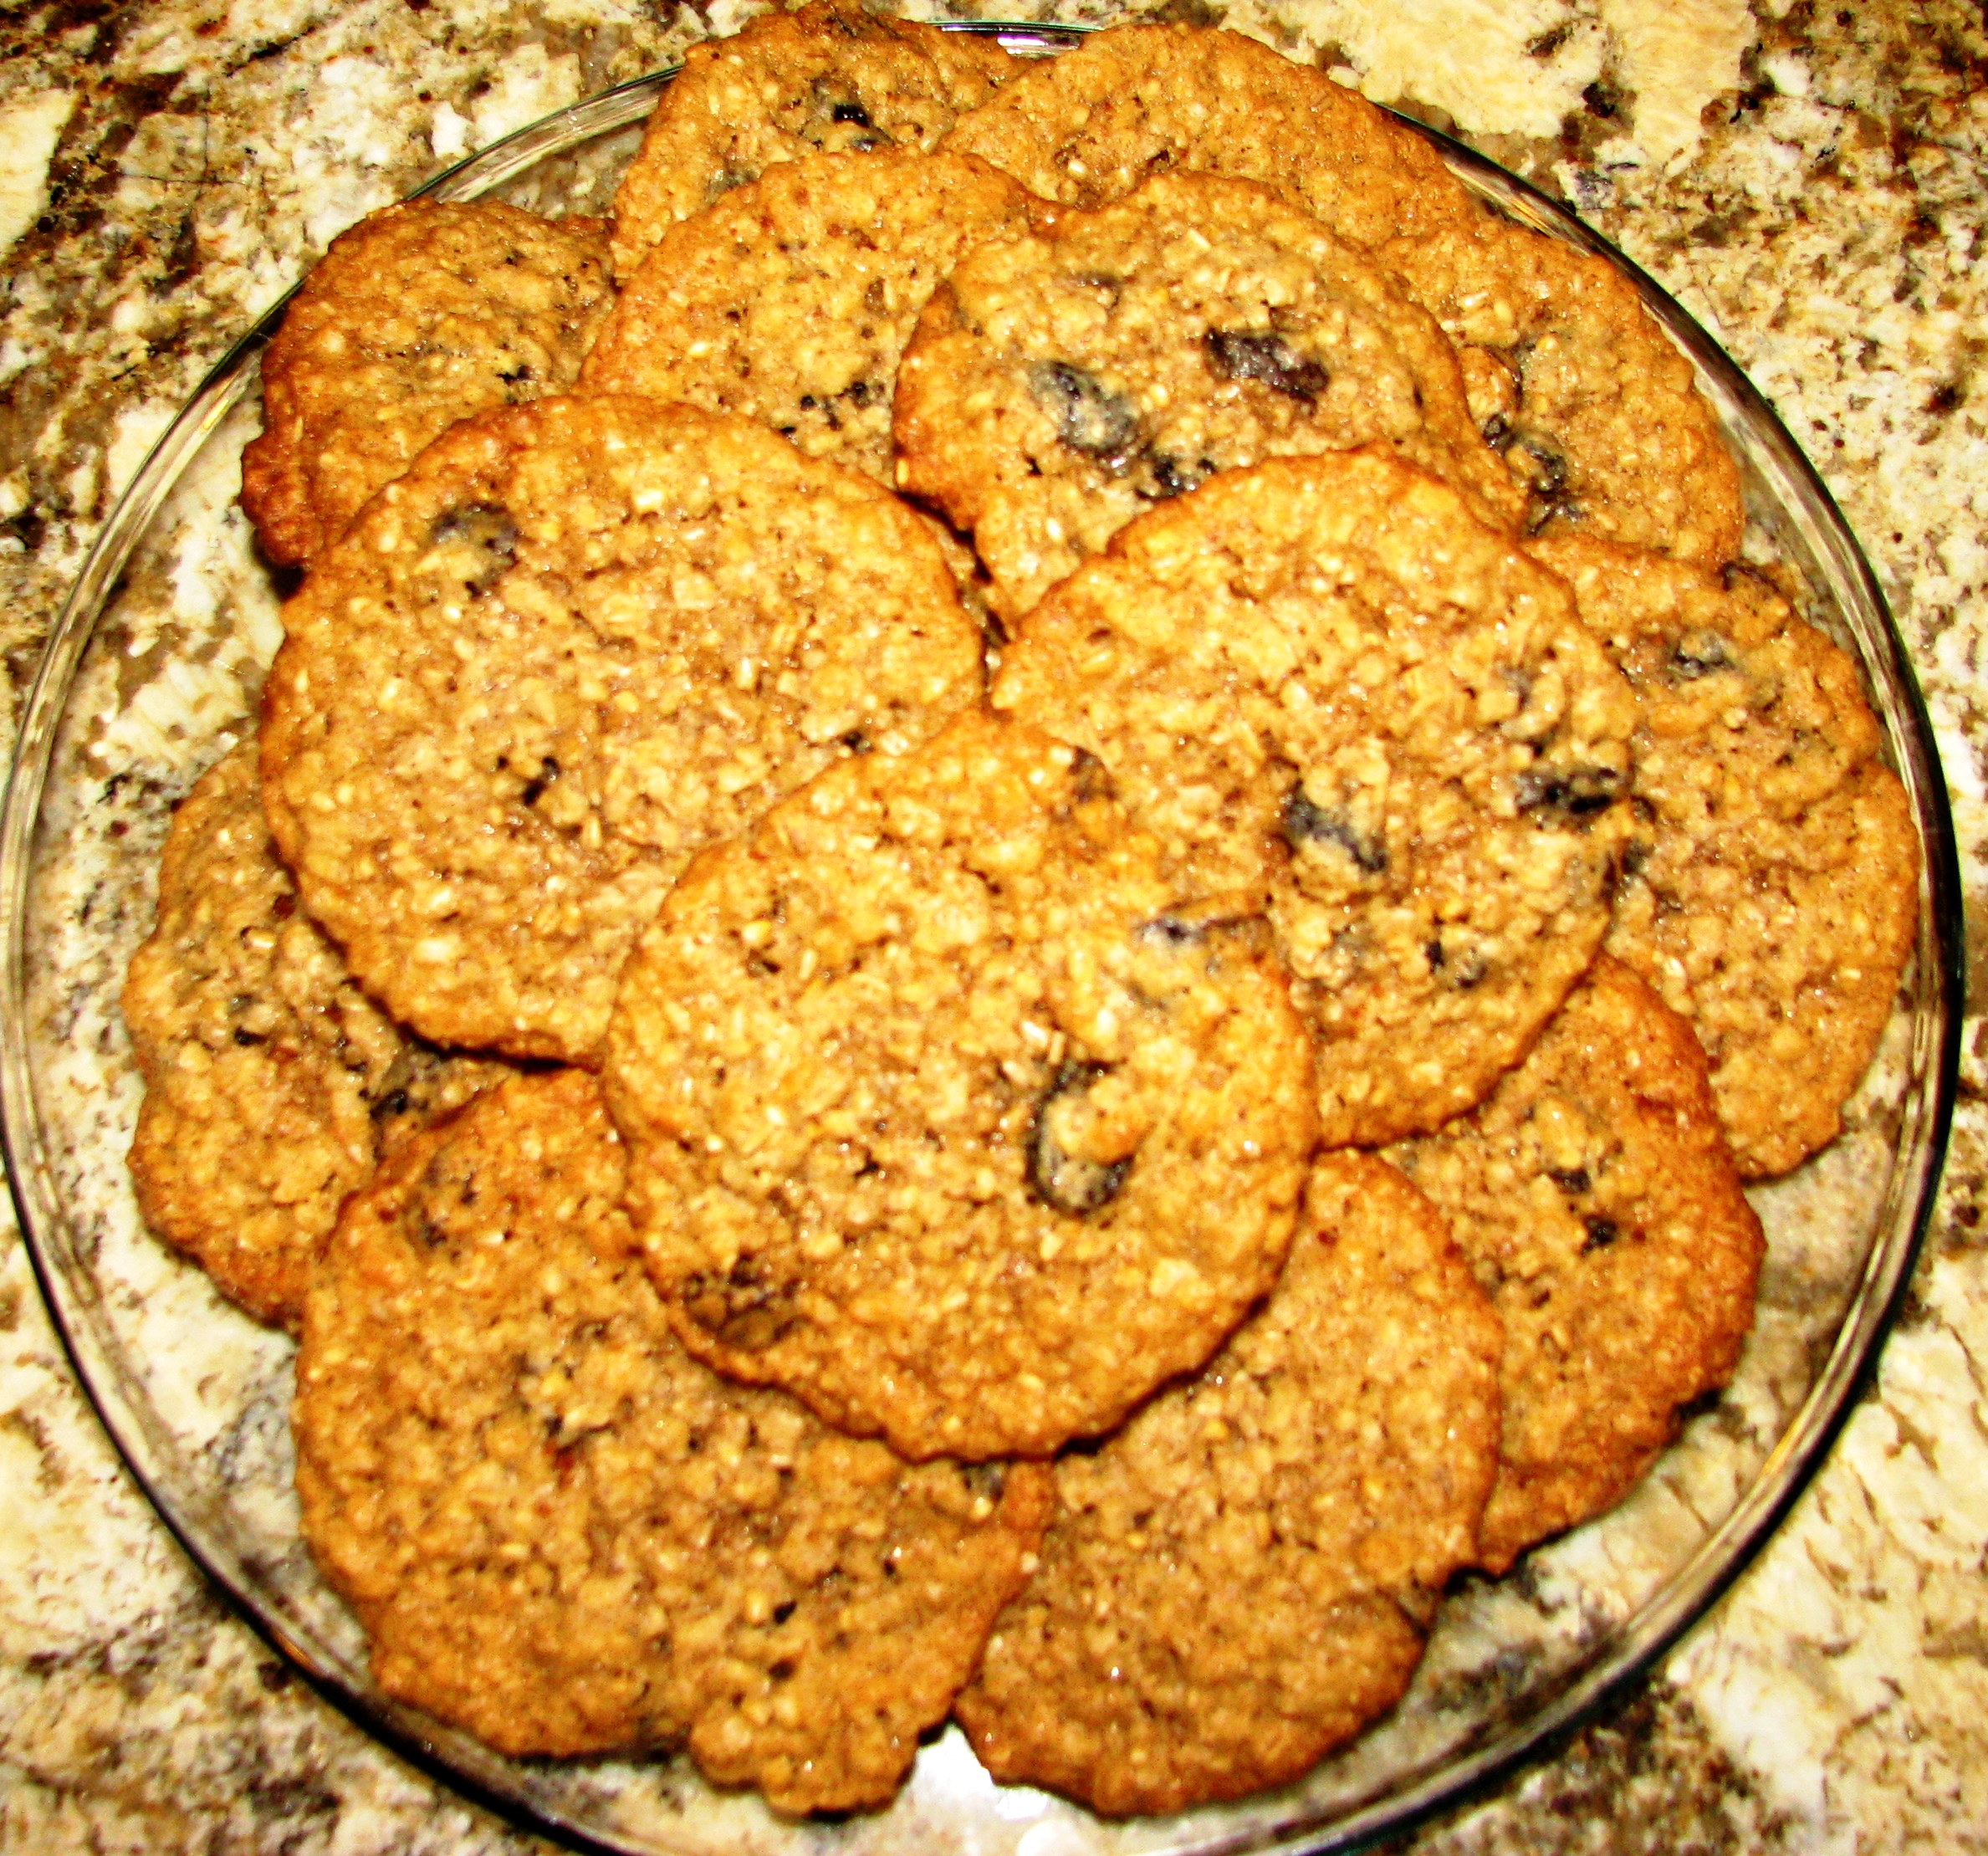 Finished oatmeal raisen cookies